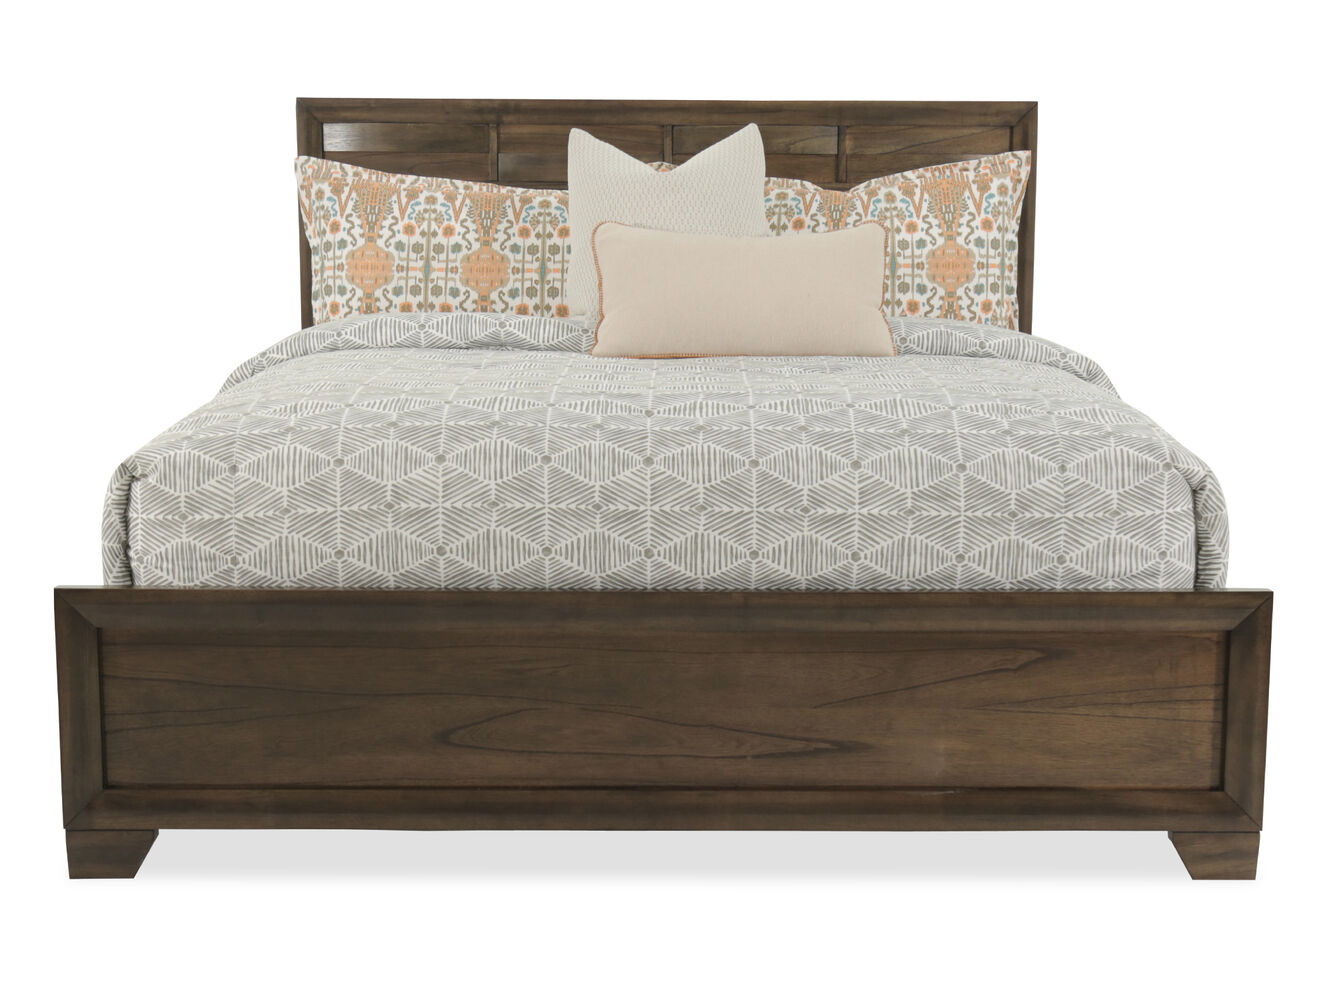 Wooden king size bed designs catalogue - Ashley Mydarosa Brown King Panel Bed